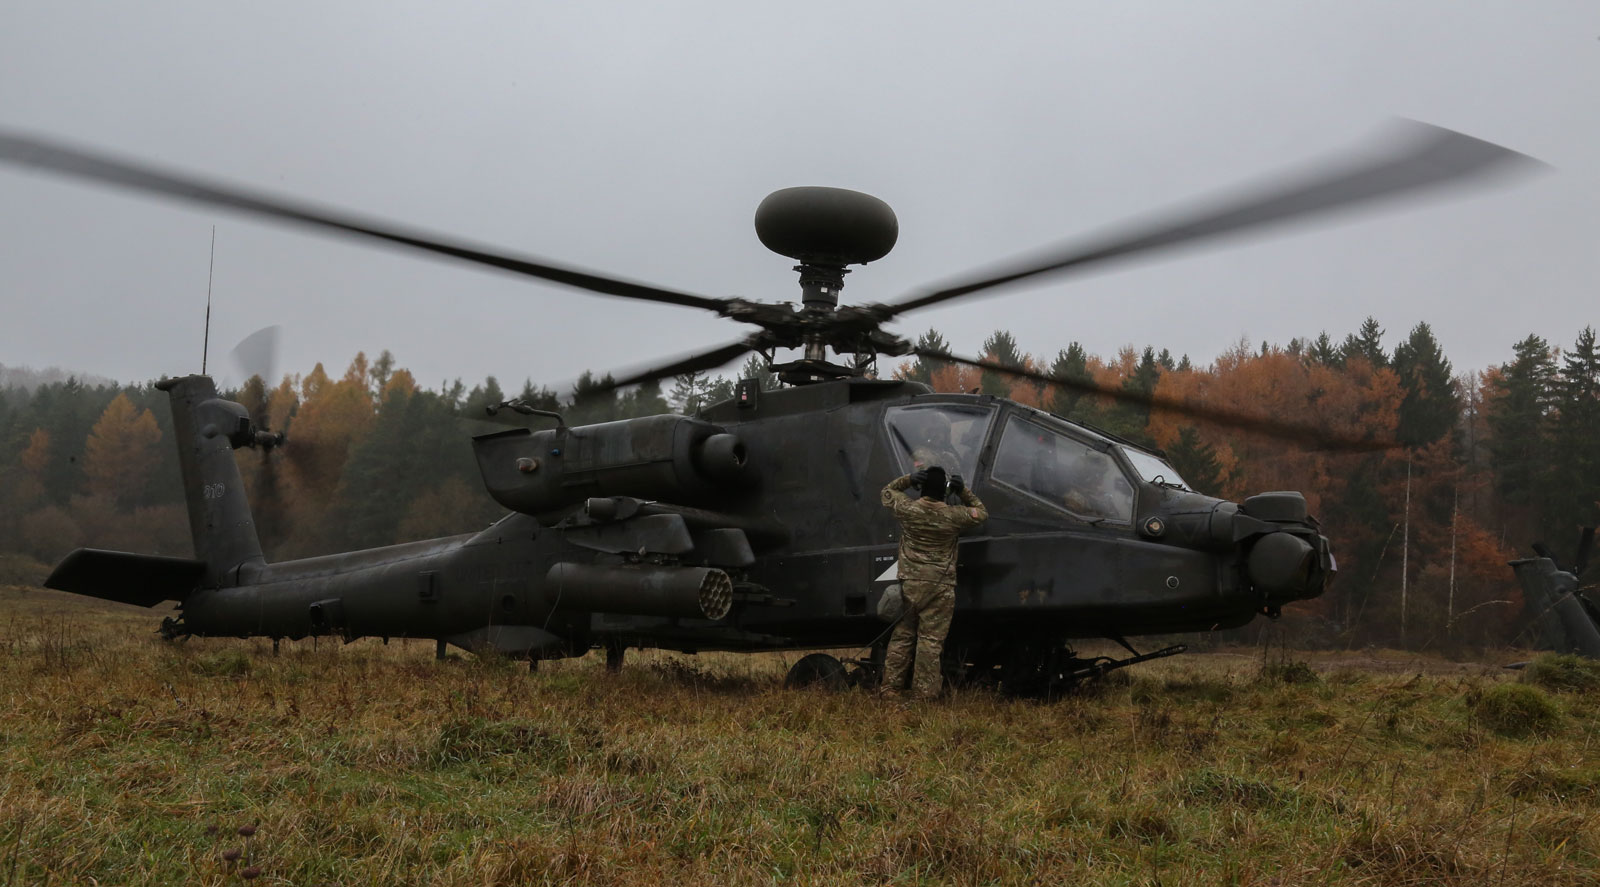 U.S. Soldiers of the 1st Battalion, 3rd Aviation Regiment prepare for flight in a AH-64D Apache Longbow Helicopter during exercise Allied Spirit VII at the U.S. Army's Joint Multinational Readiness Center in Hohenfels, Germany.